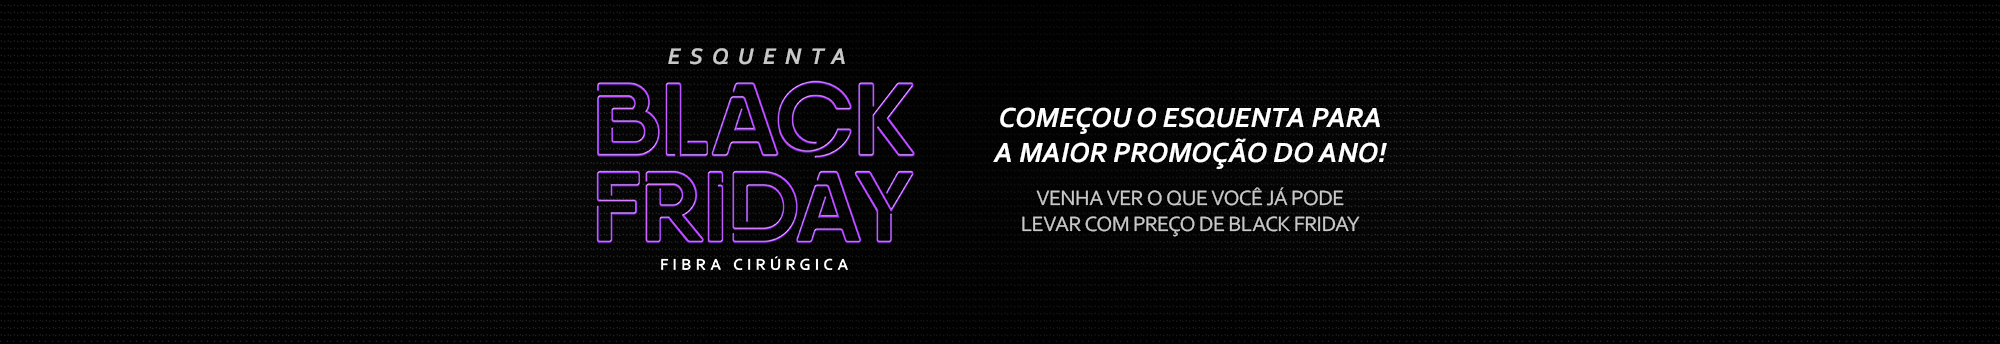 Banner Principal Black Friday 2017